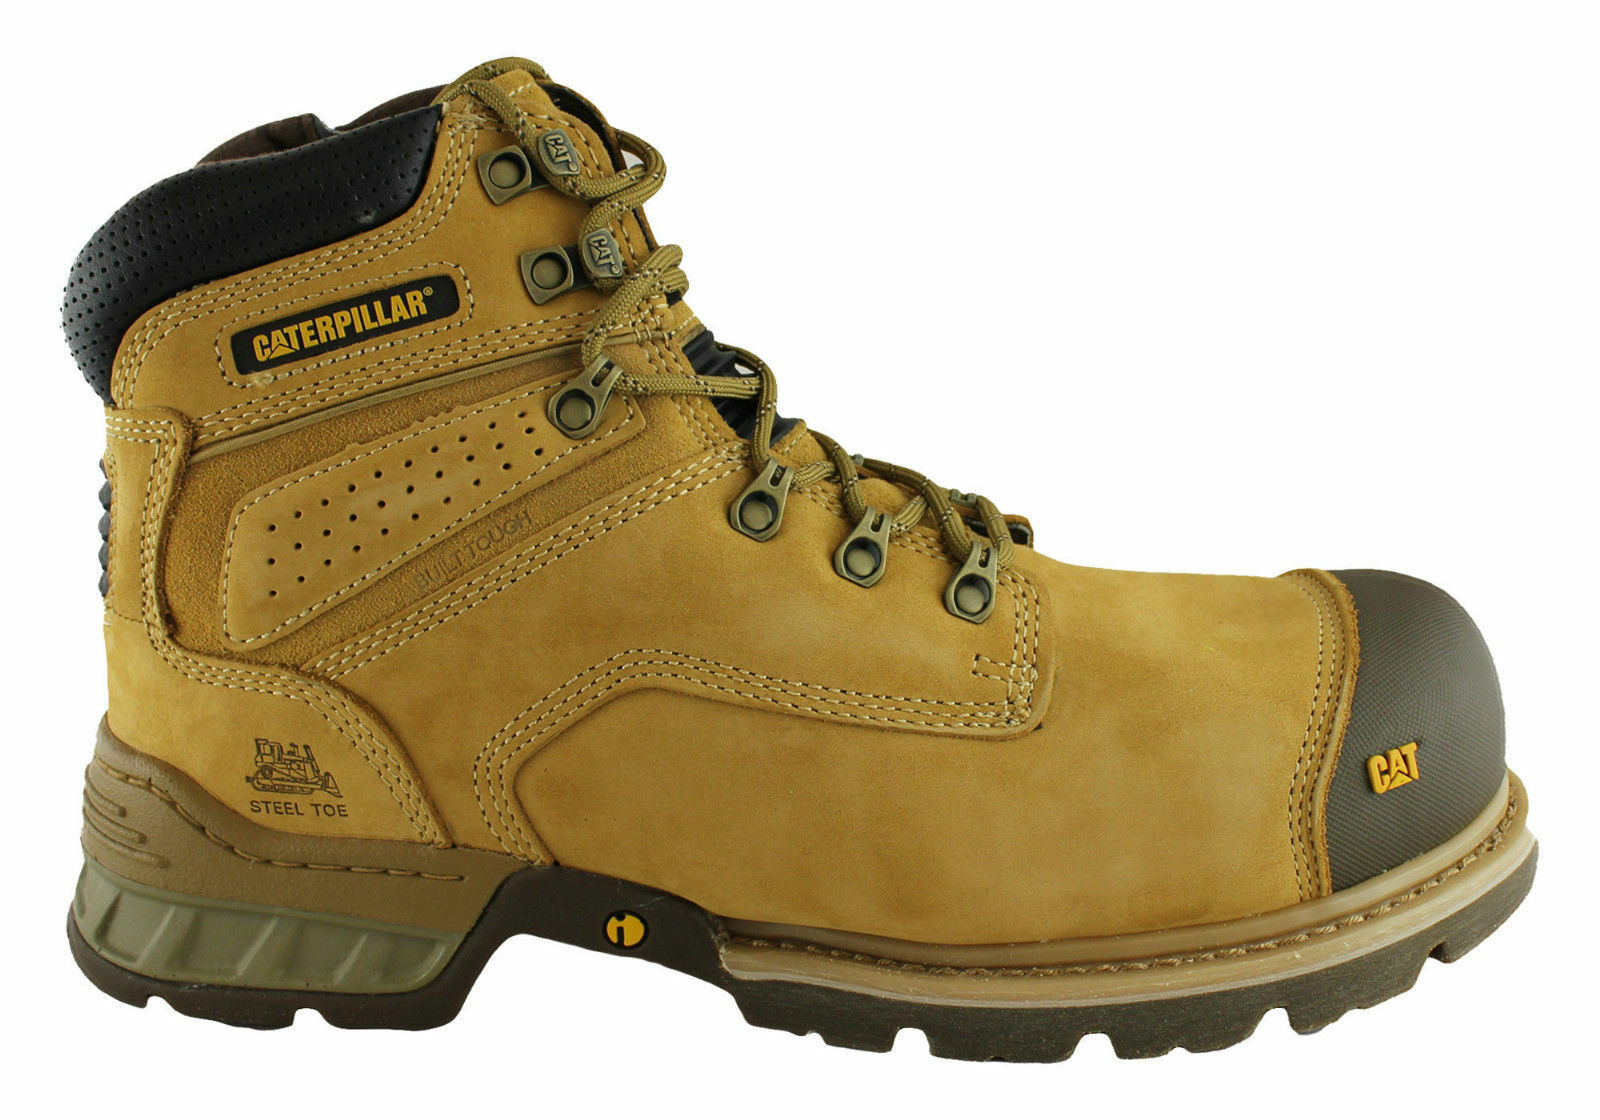 CAT Men's Boots for sale   Shop with